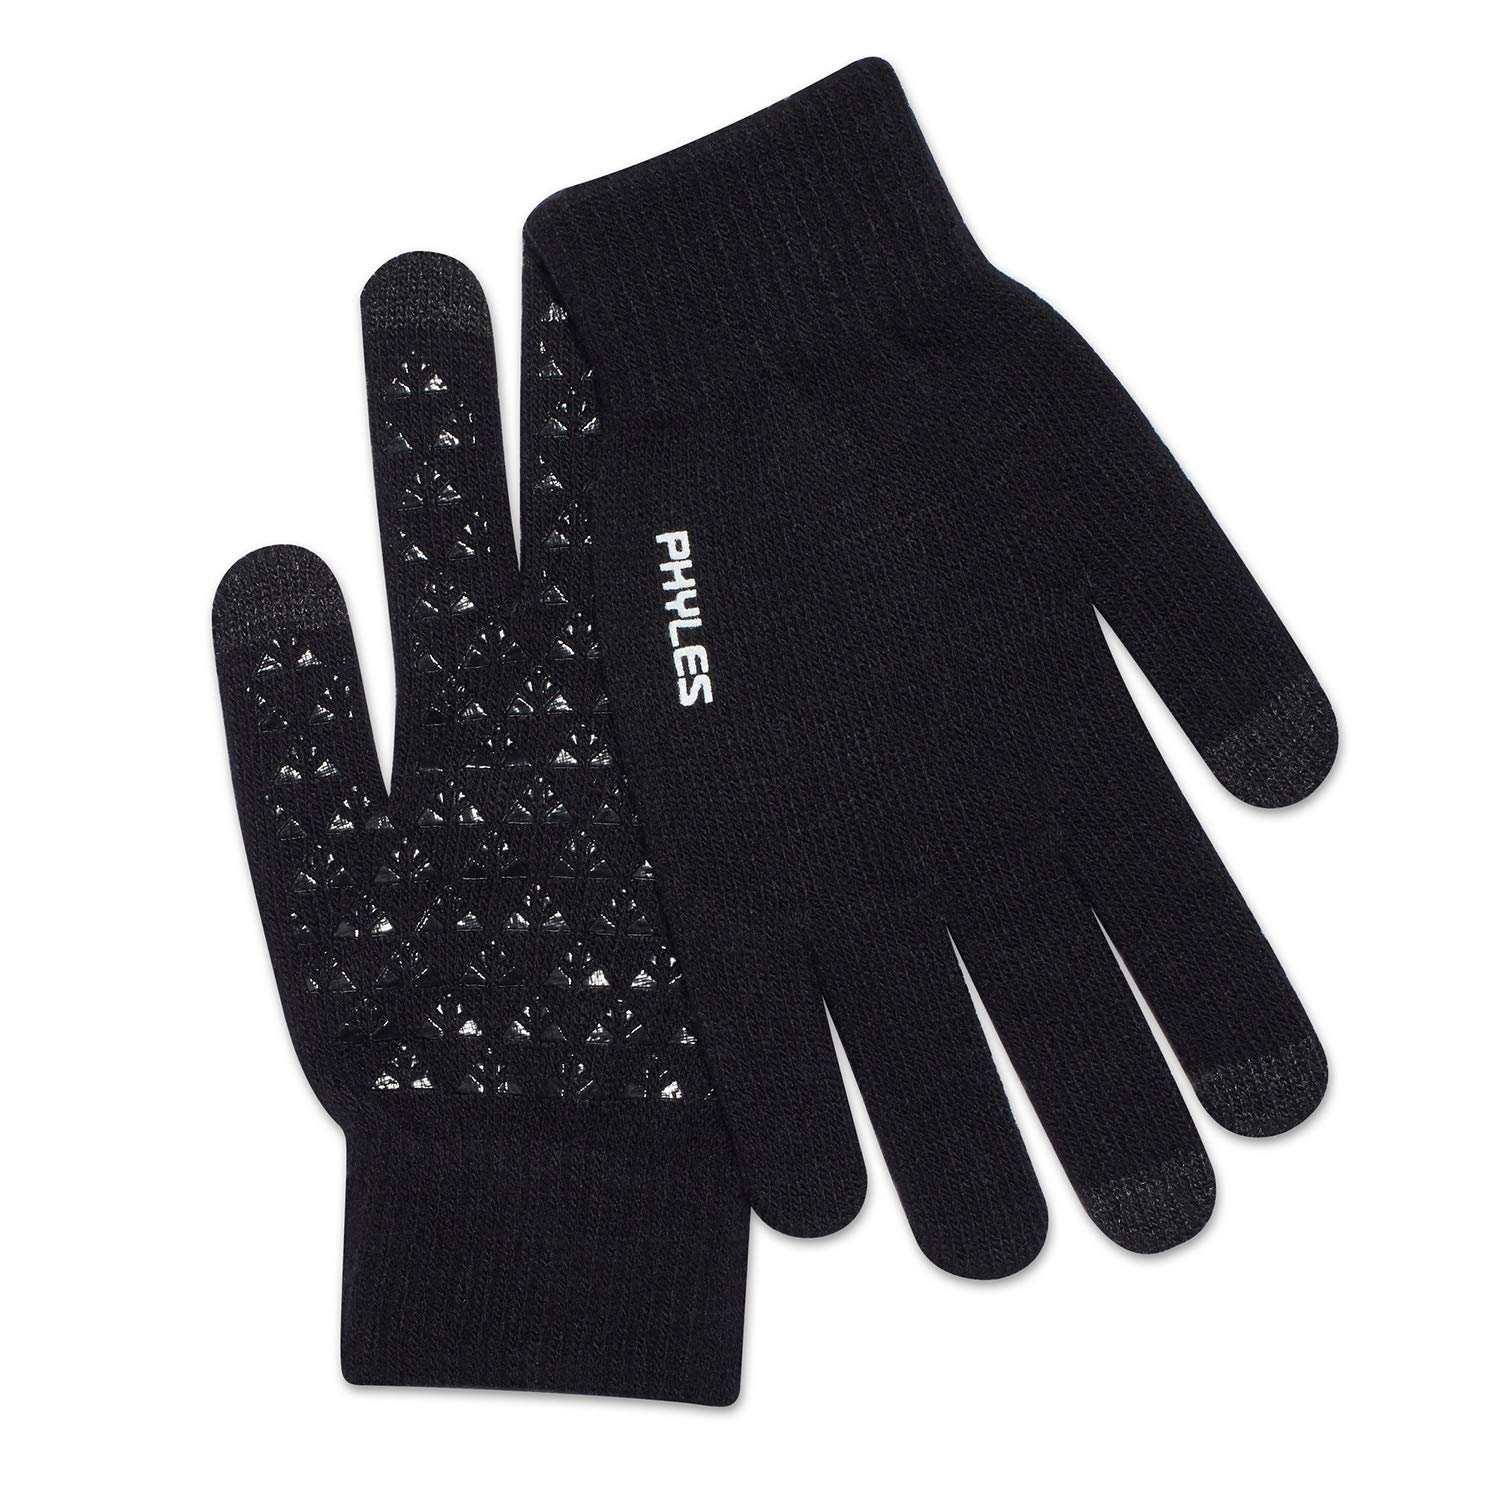 PHYLES Winter Knit Gloves Touchscreen Gloves Women Men Thermal Texting Gloves Running Gloves (Black, L)